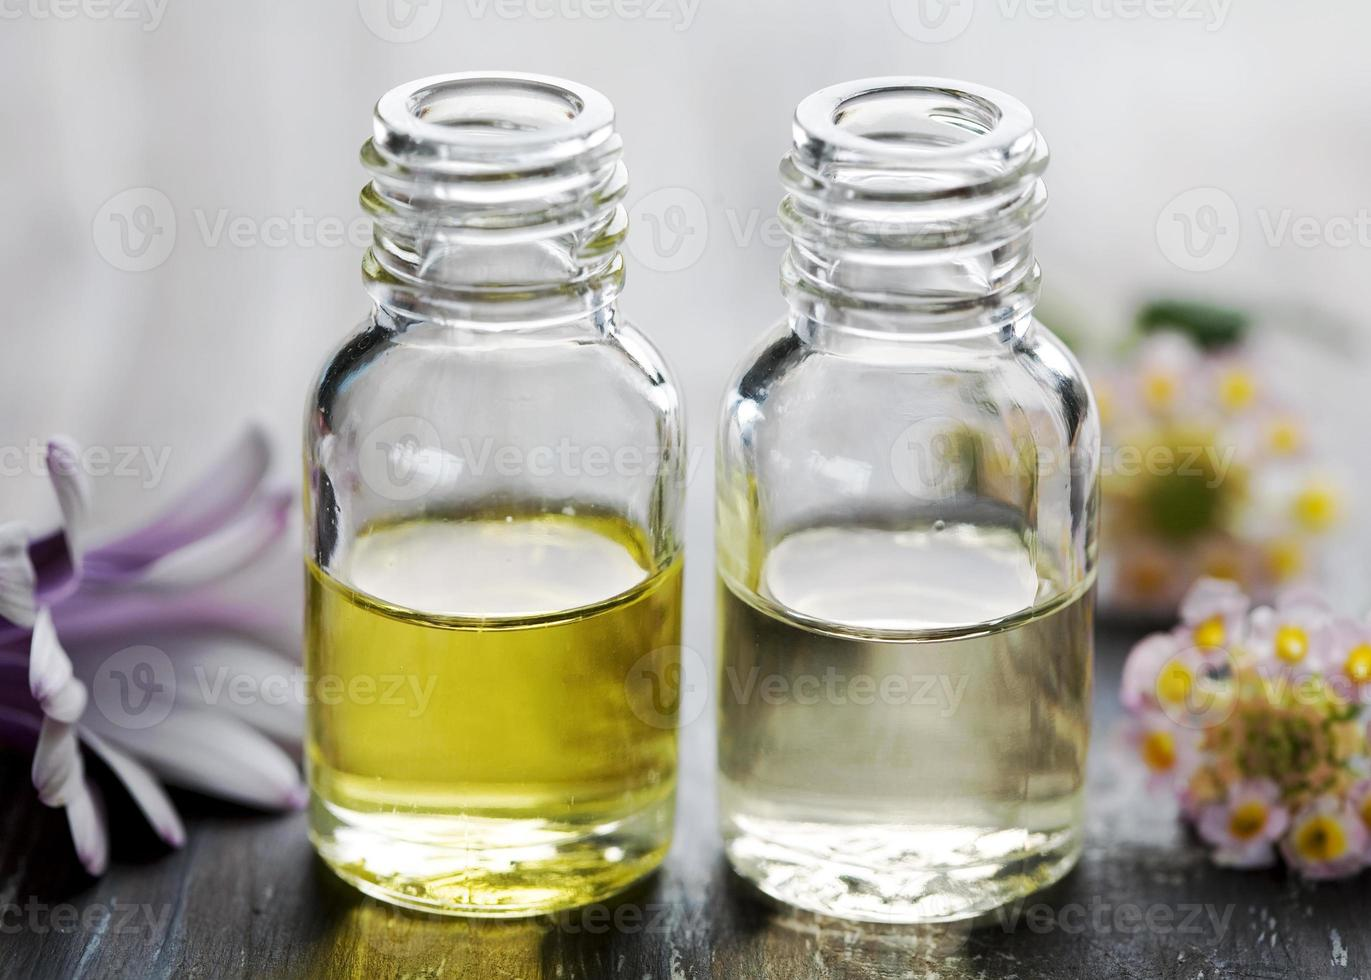 Bottles containing essential oil photo